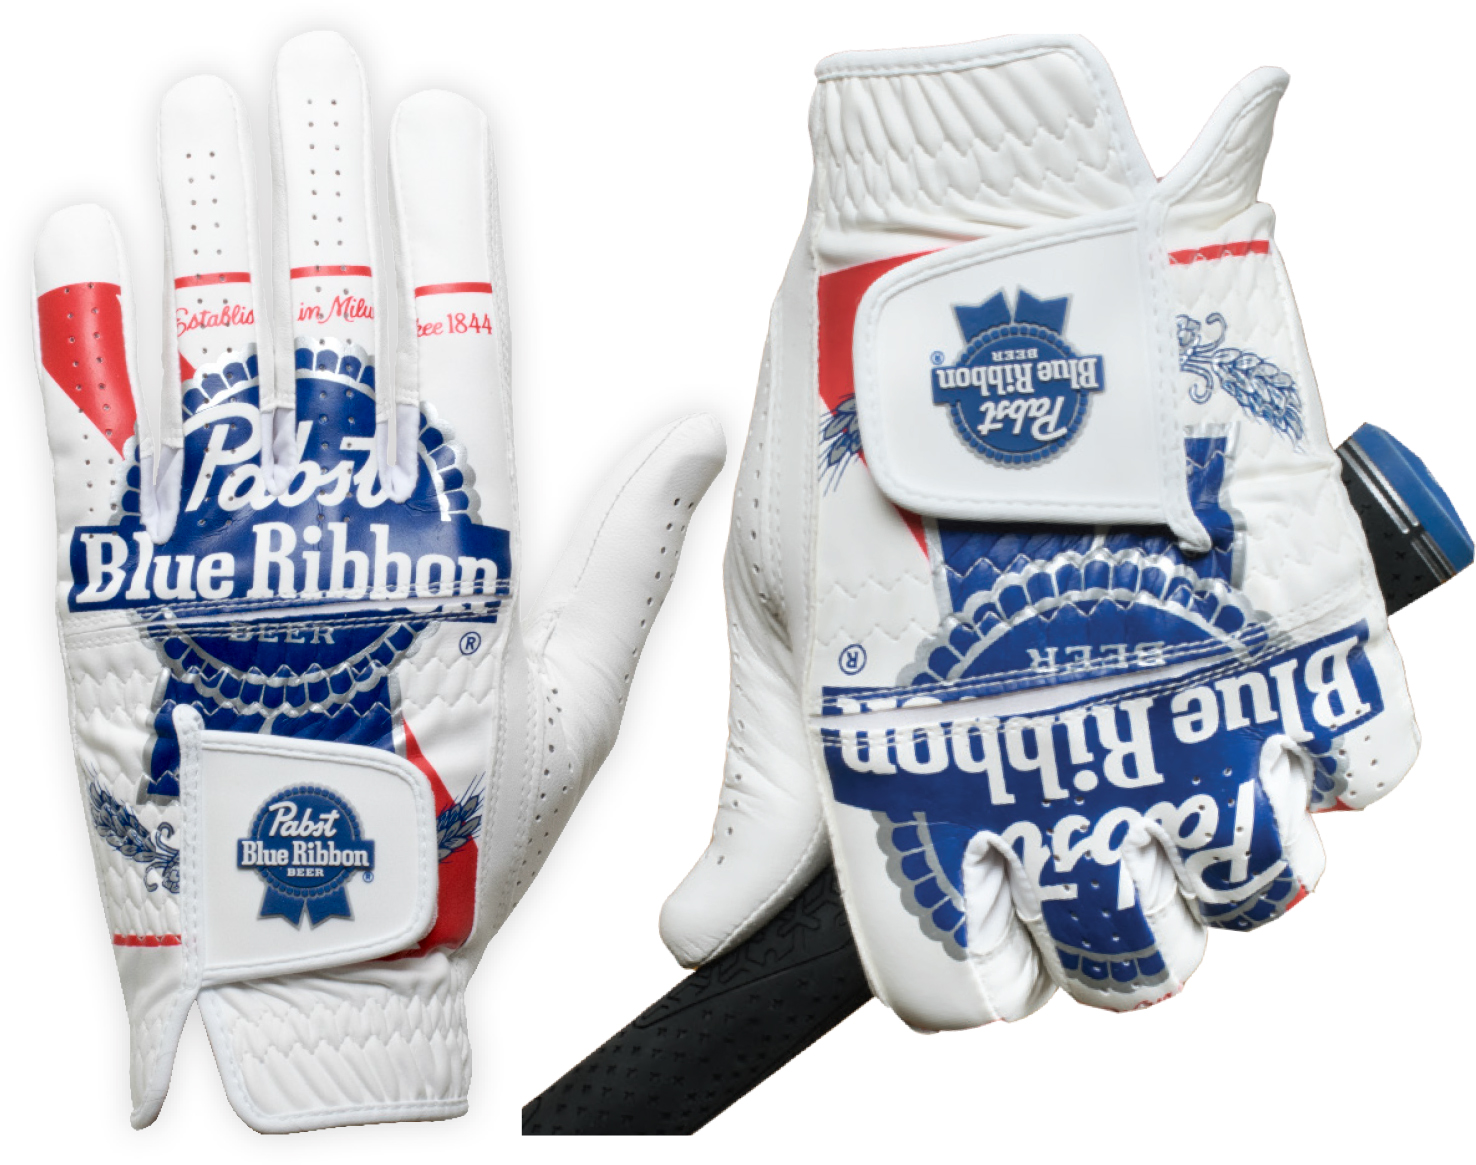 Glove Branders Design Series Cabretta Golf Glove